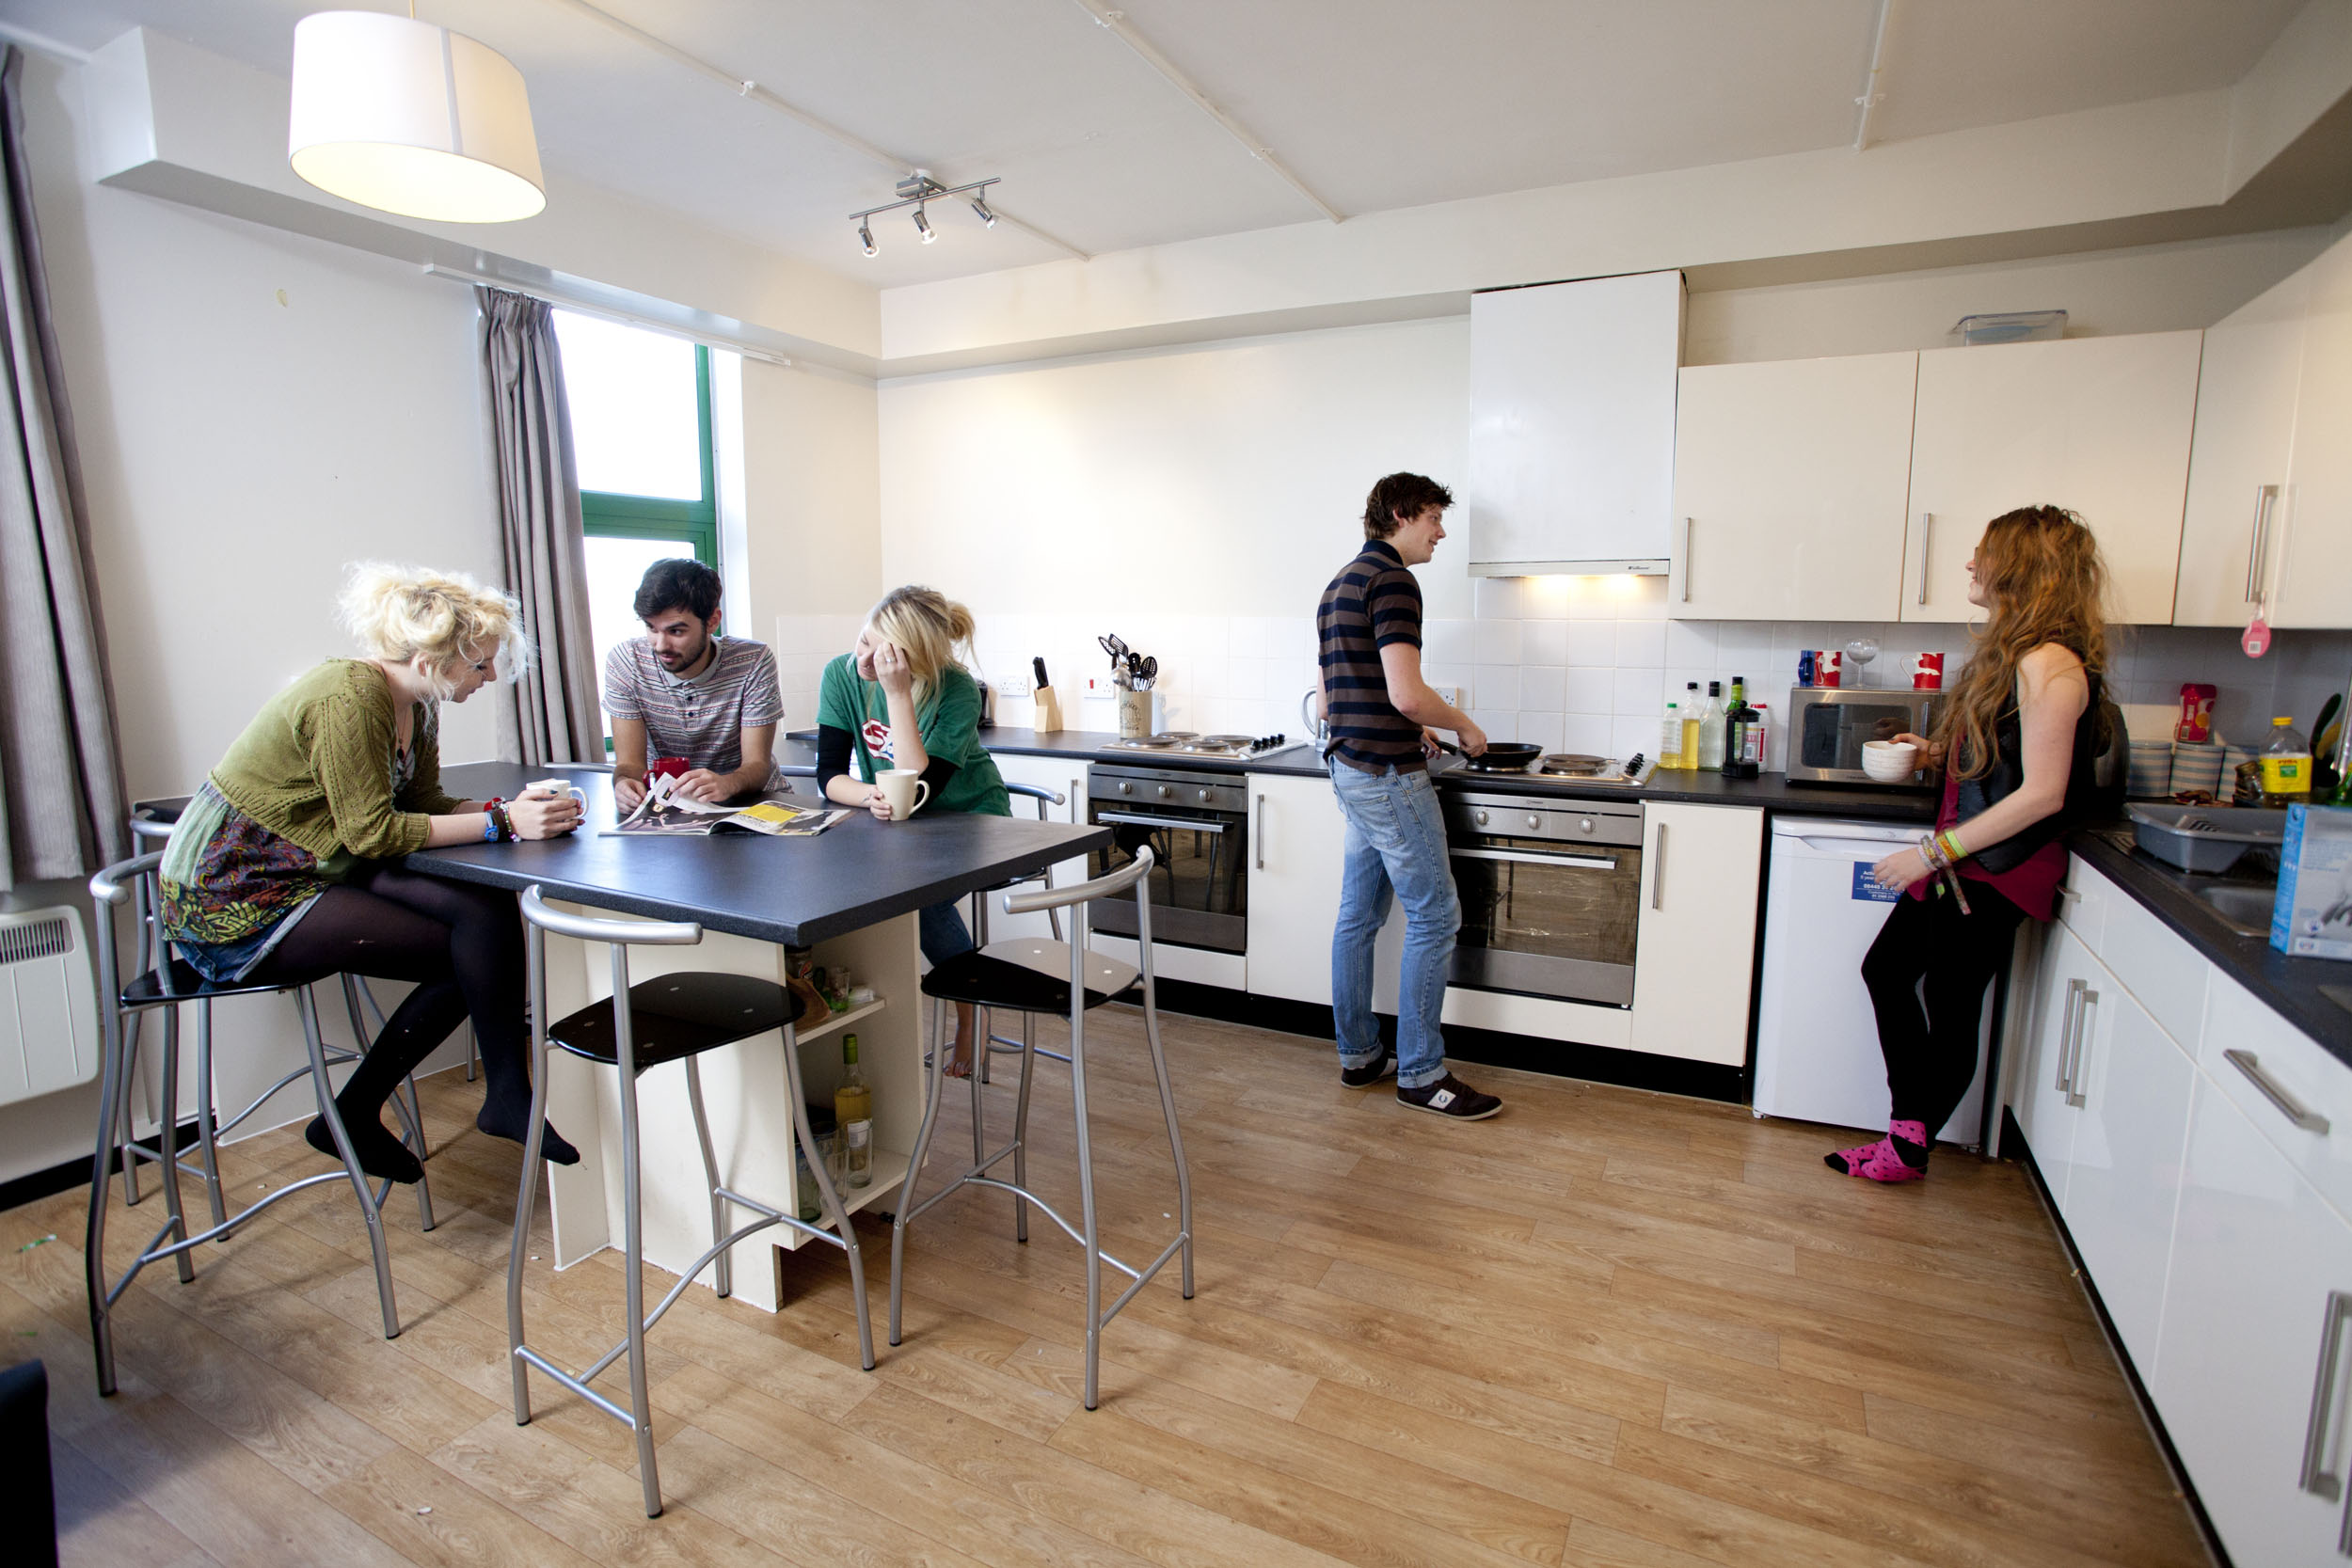 Big is not always best in student accommodation - LandlordZONE